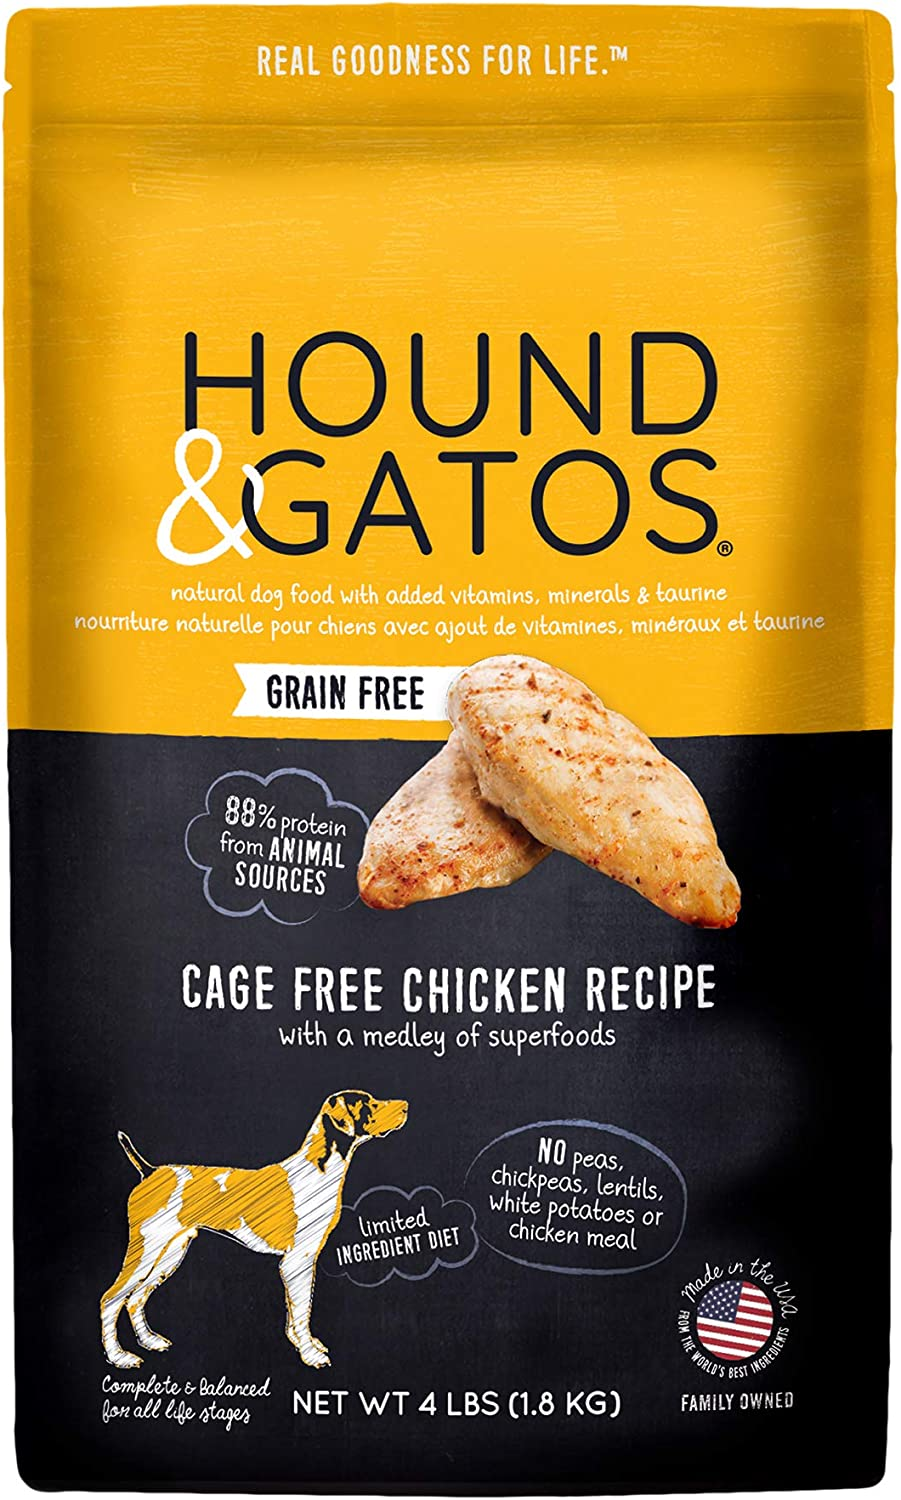 Hound & Gatos Natural Grain-Free Dry Dog Food, Grain-Free Cage Free Chicken Recipe, Made in the USA